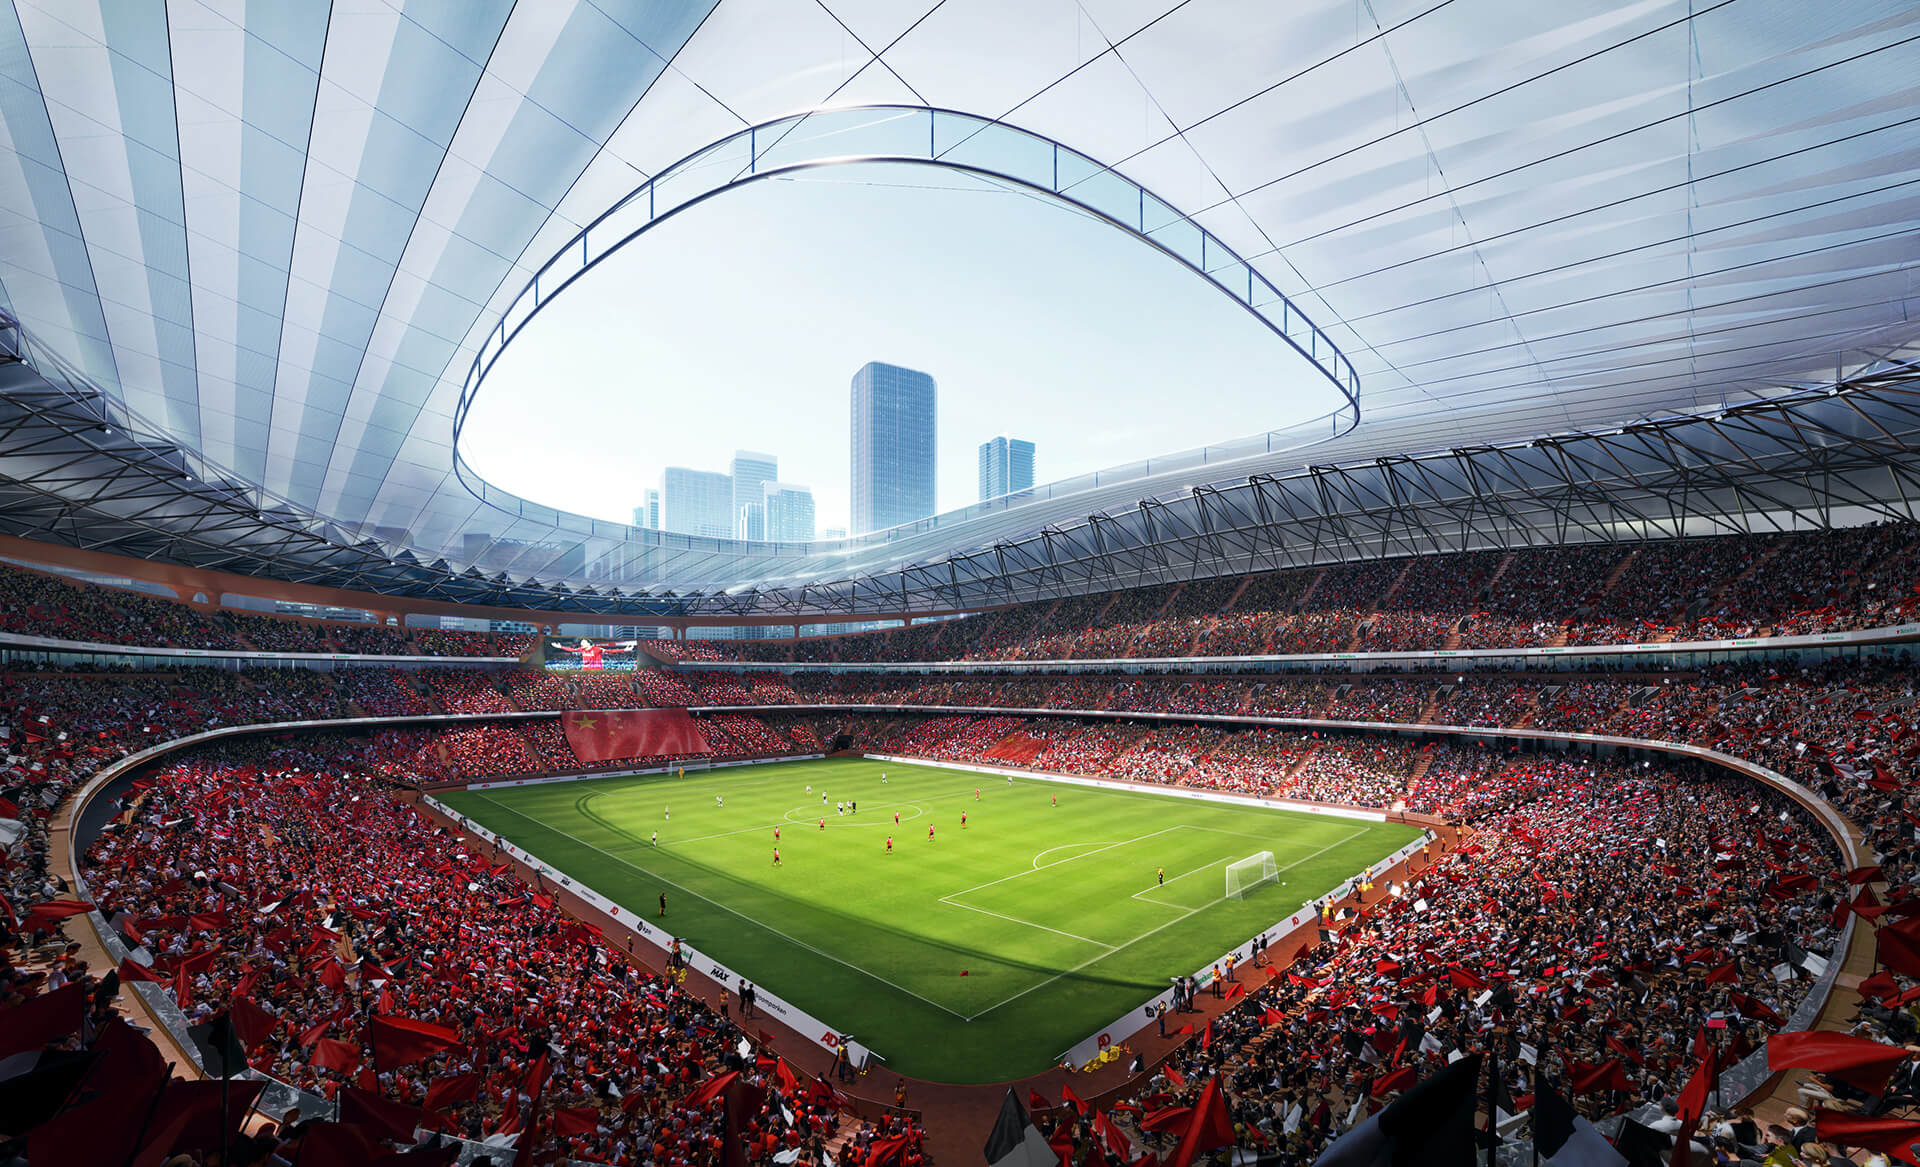 The stadium holds space for 60,000 football fans | Xi'an International Football Center | Zaha Hadid Architects | STIRworld